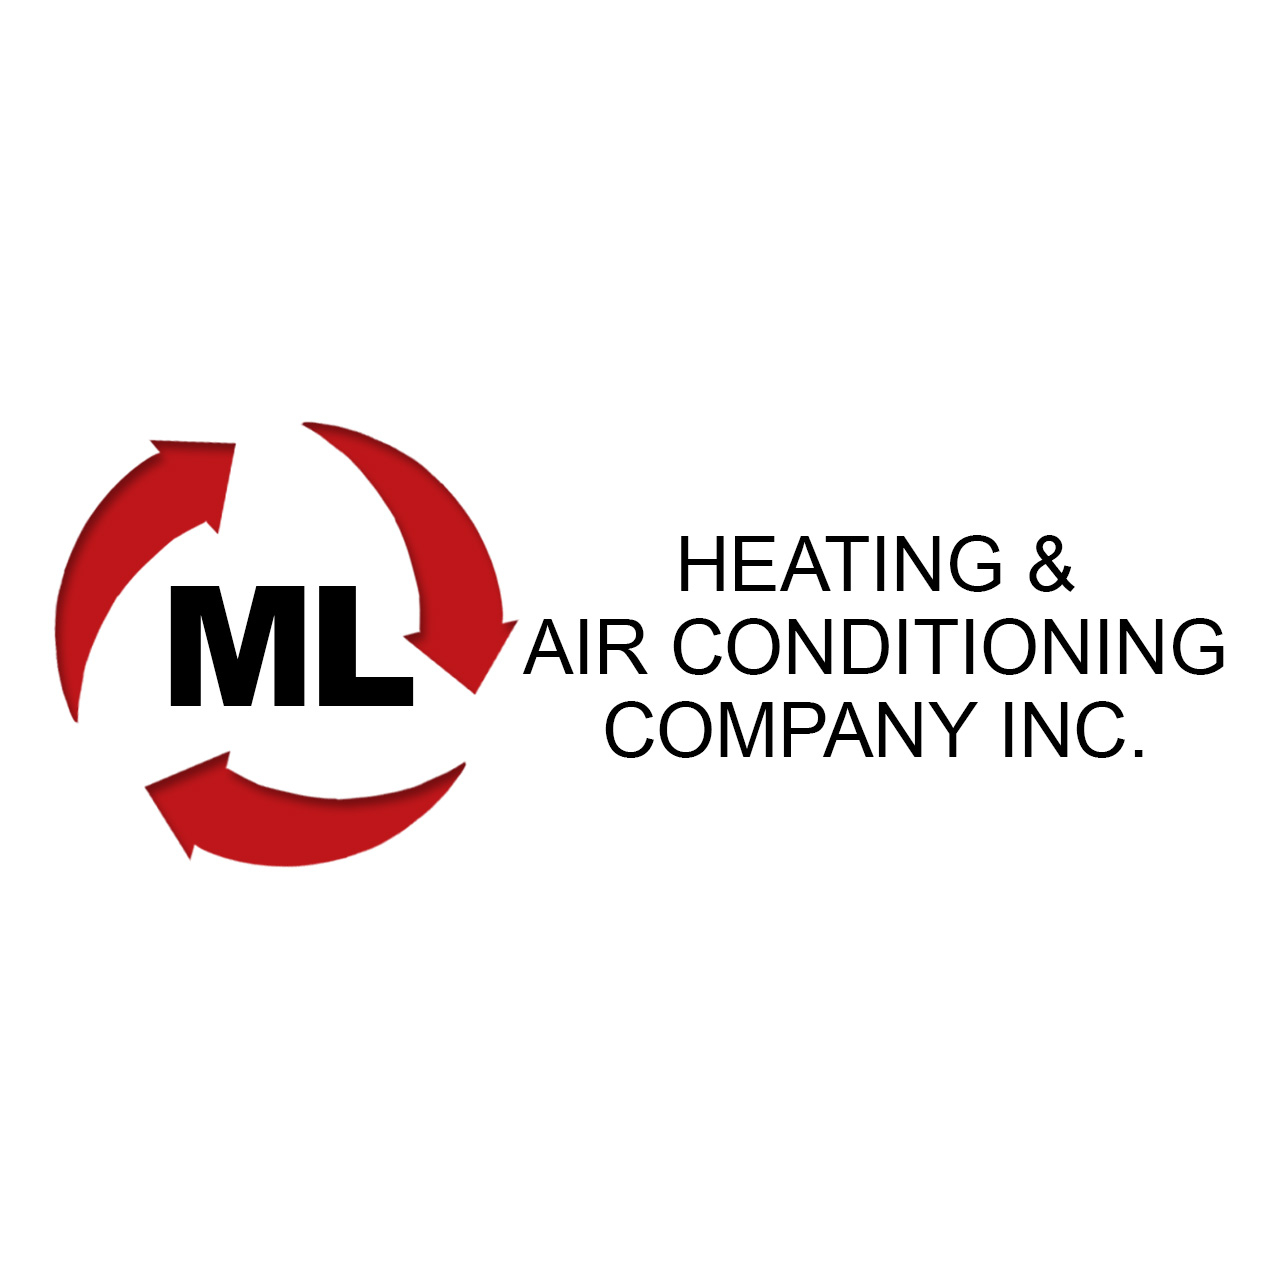 M. L. Heating & Air Conditioning